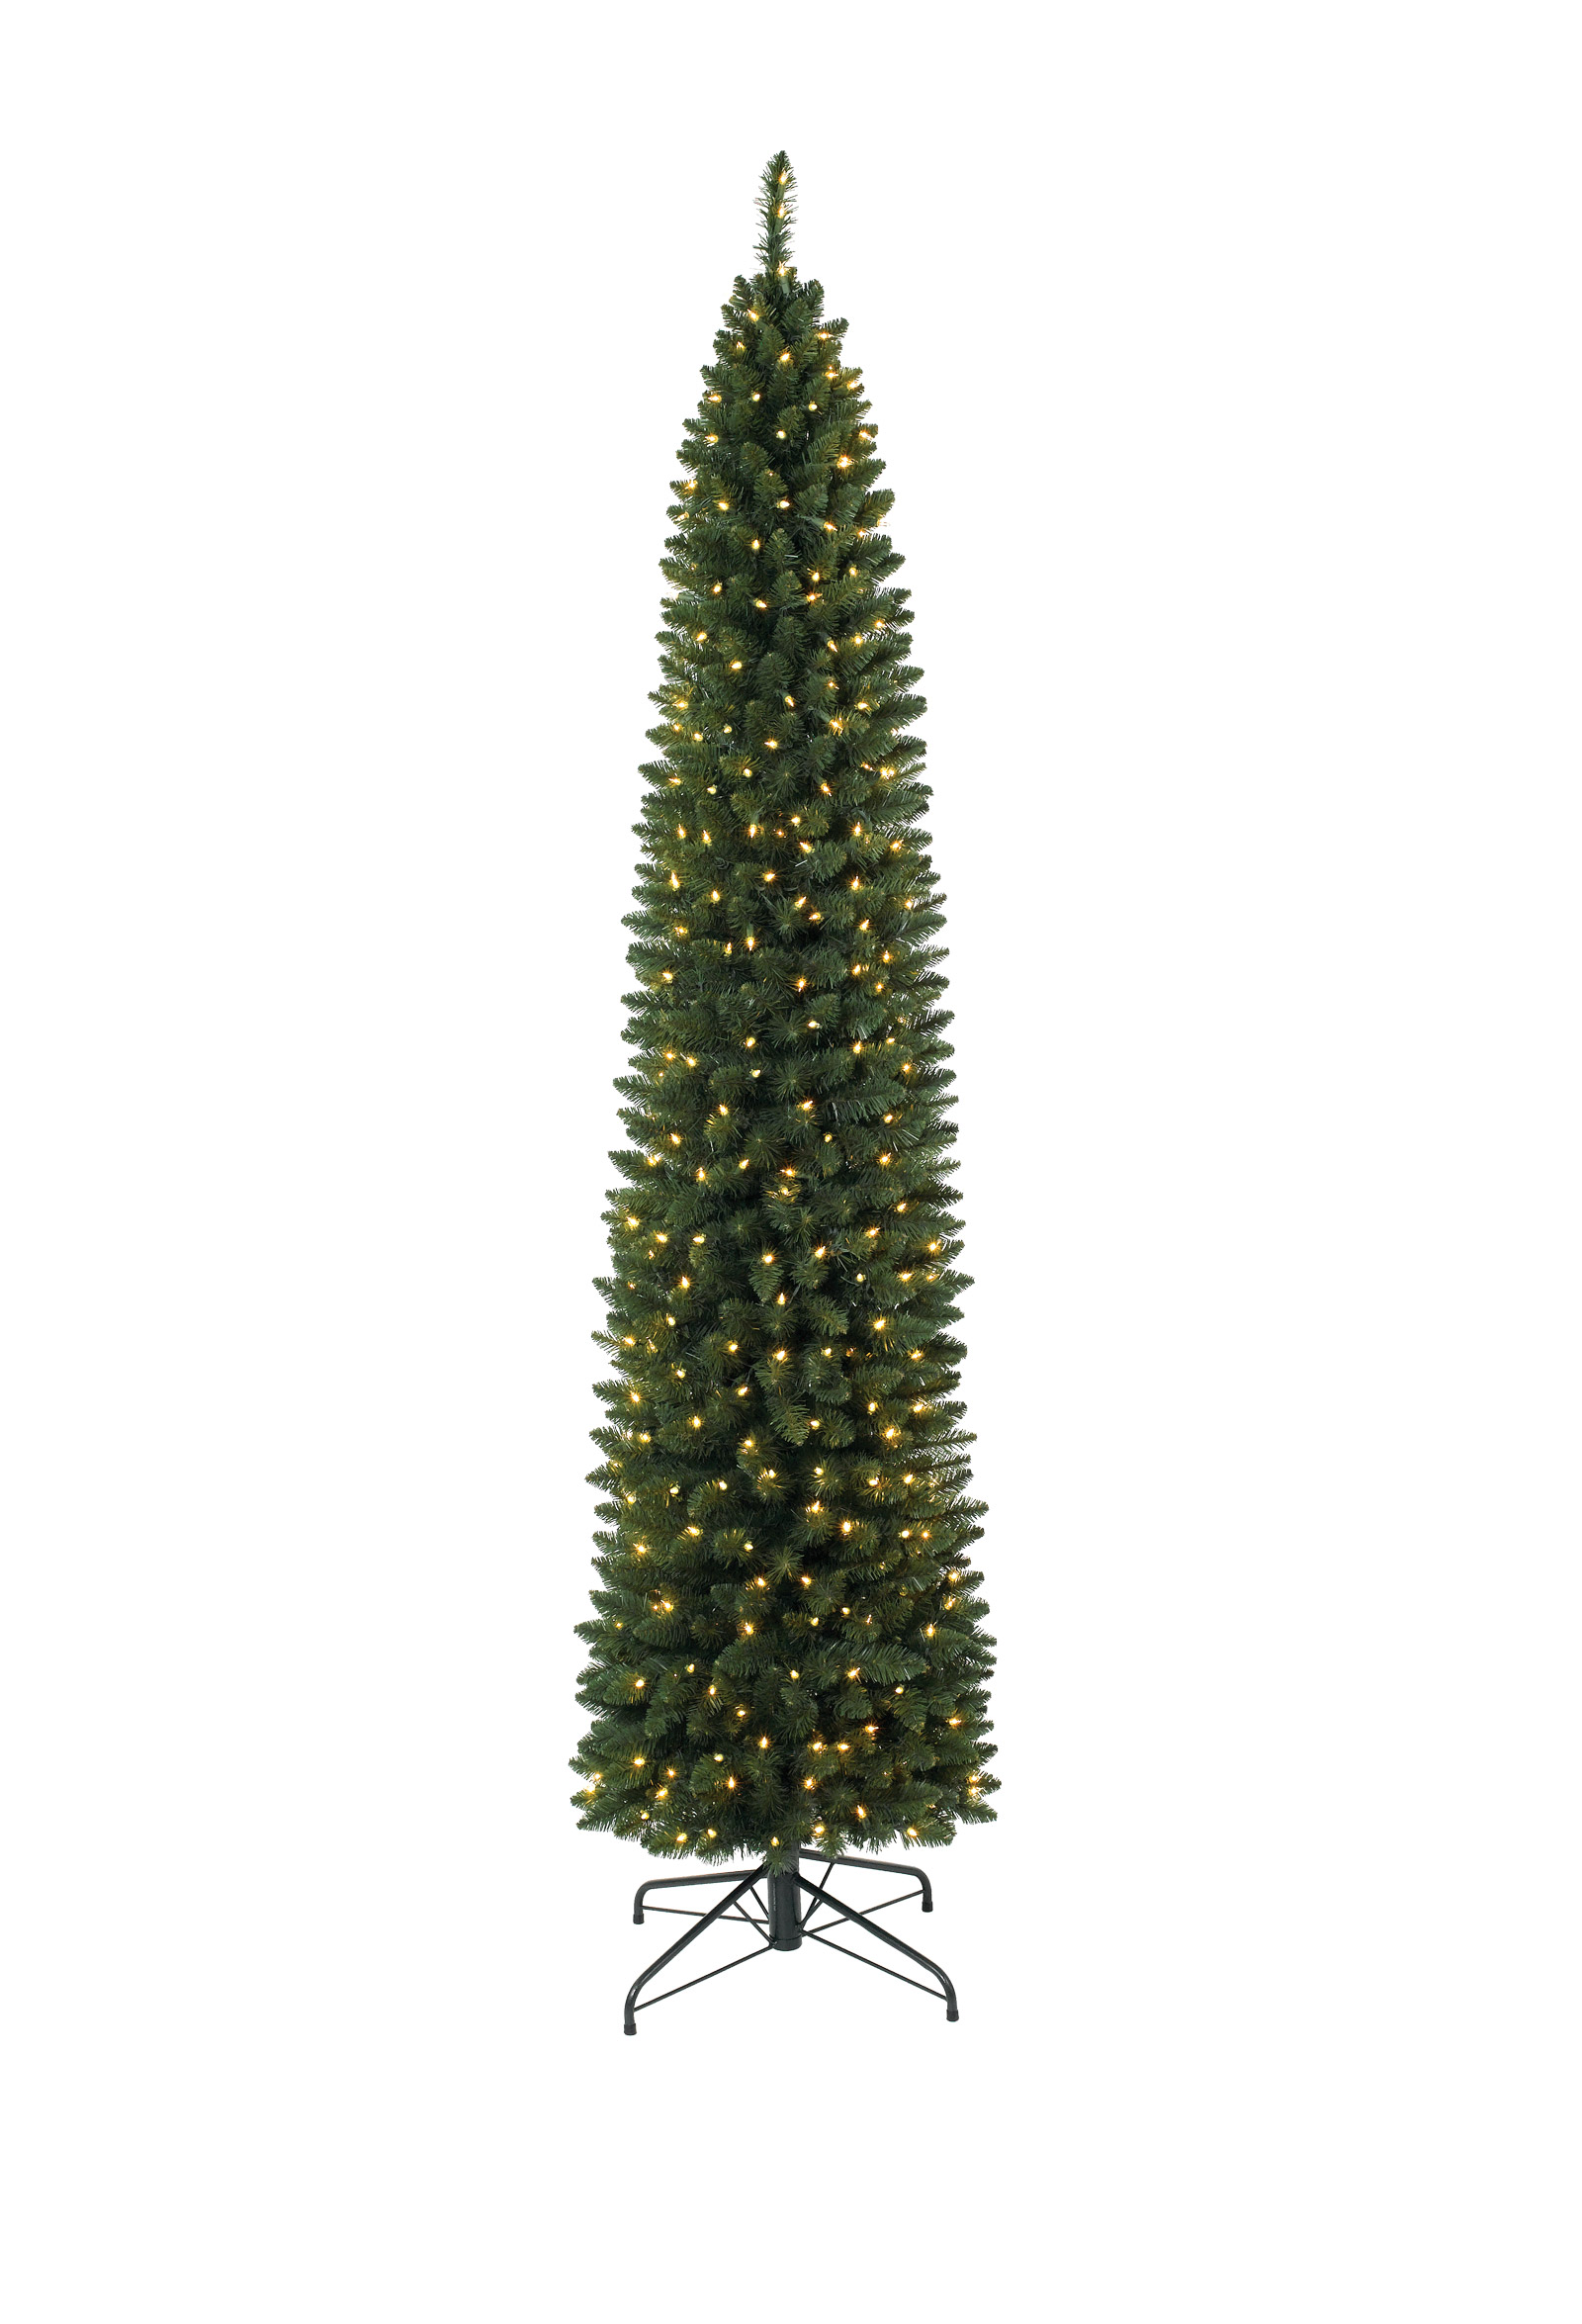 9 ft Pre lit Ticonderoga Pencil Christmas Tree | Christmas Tree Market